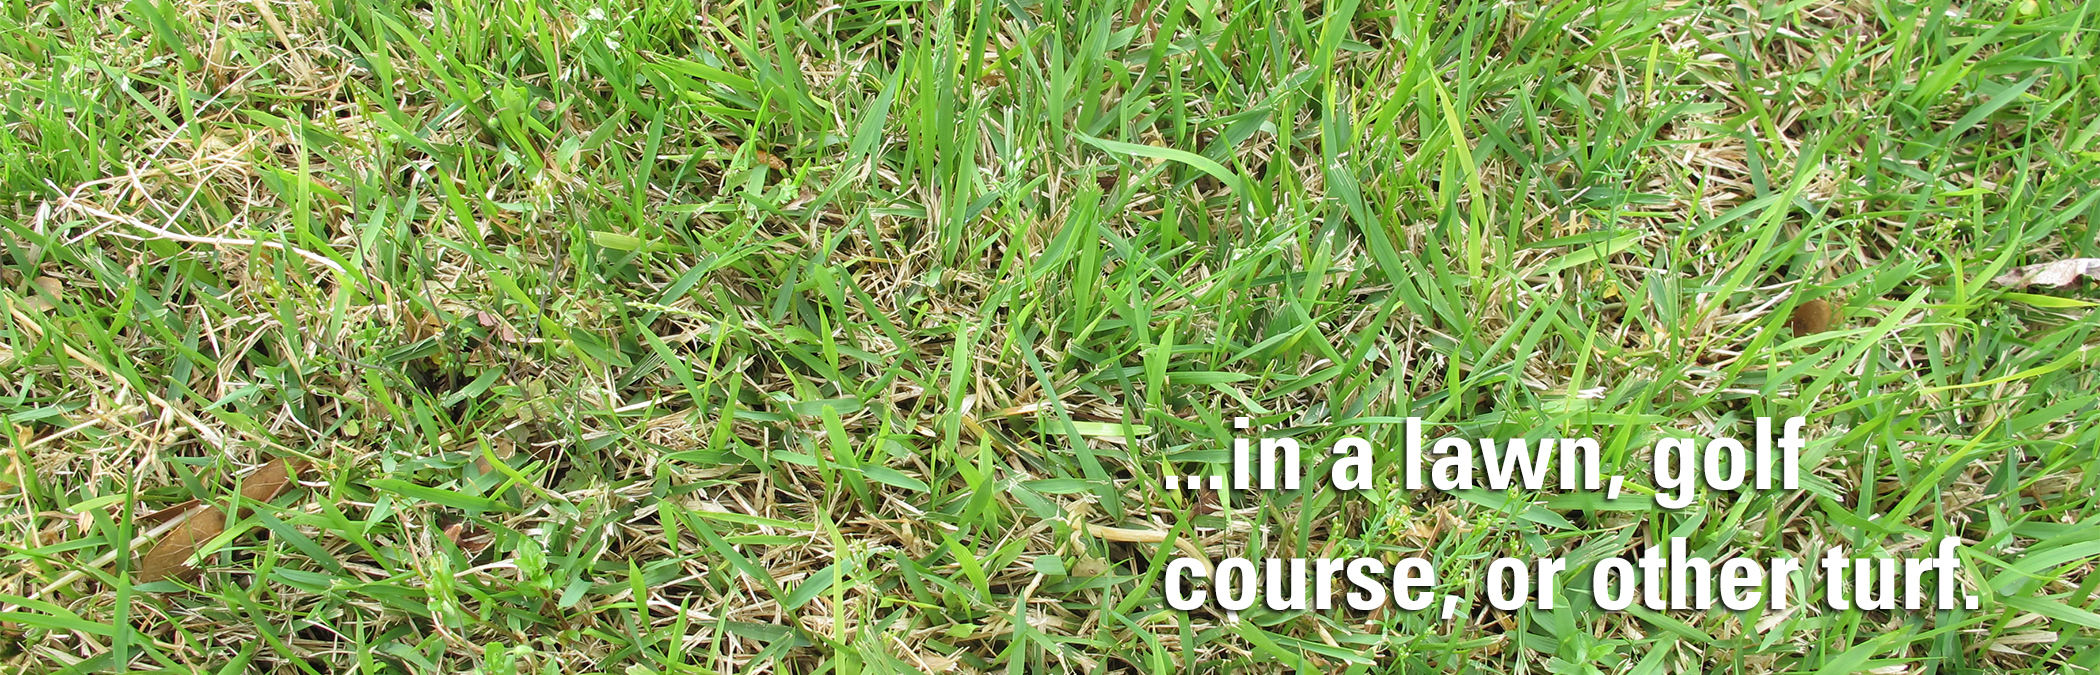 in a lawn, golf course, or other turf.